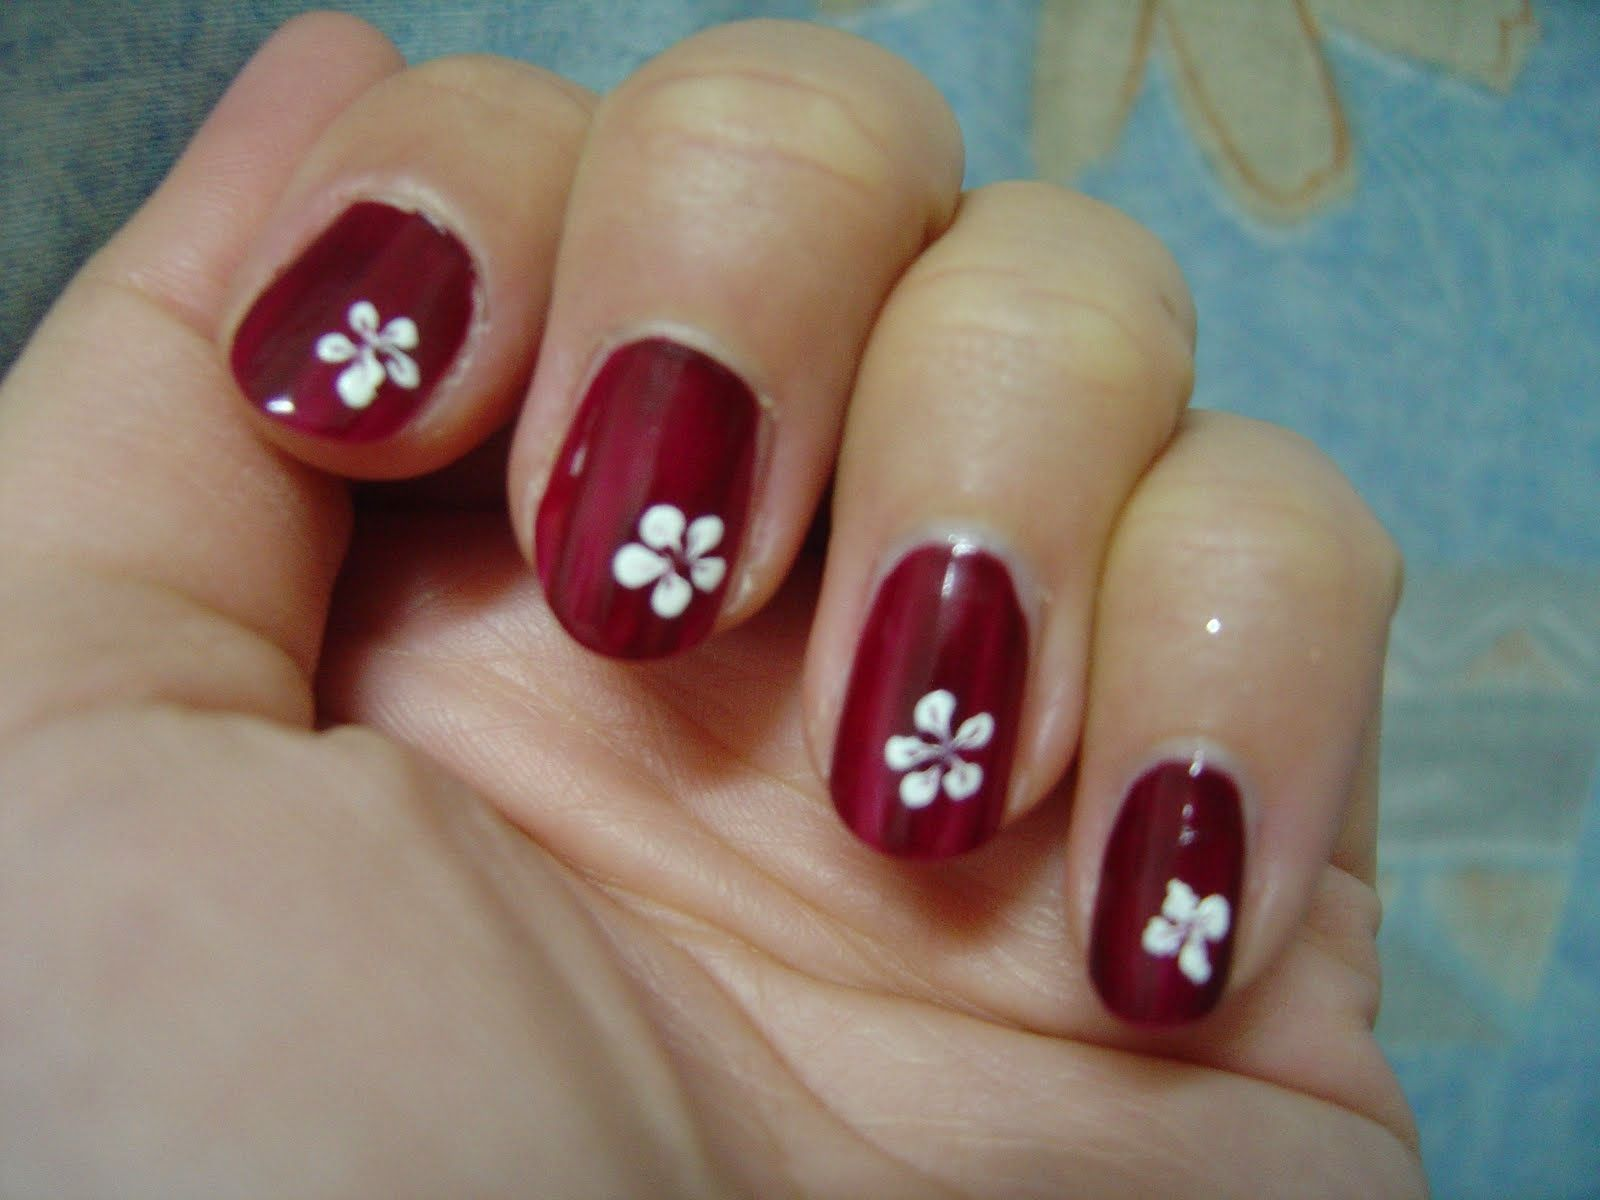 Simple Flower Nail Design Ideas | Nailed it! - On the tip of your ...